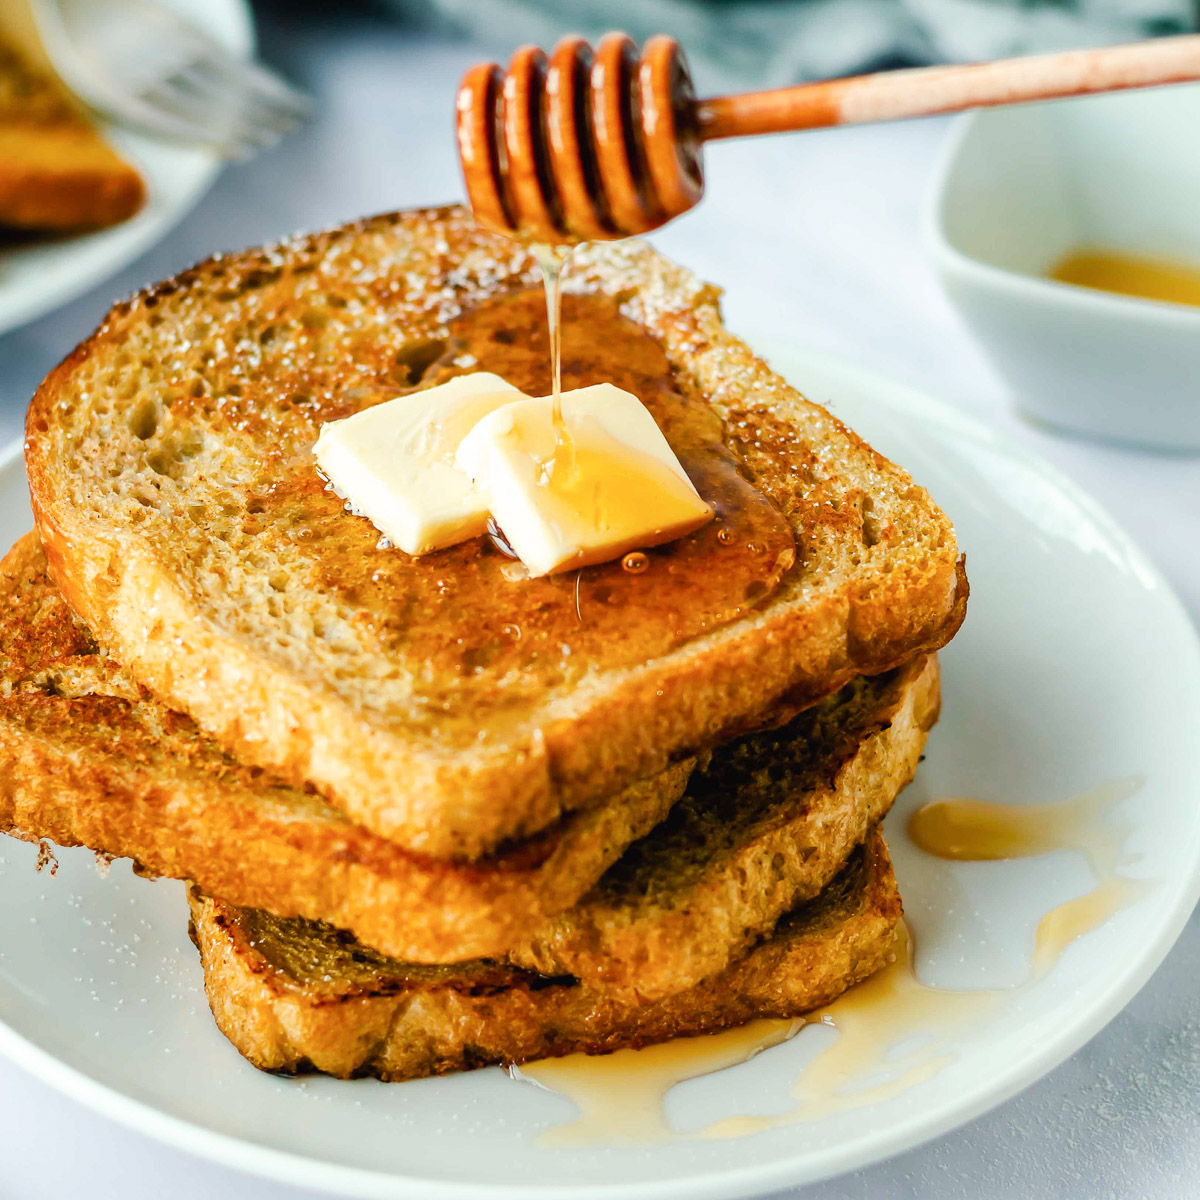 dripping honey onto a stack of pumpkin French toast